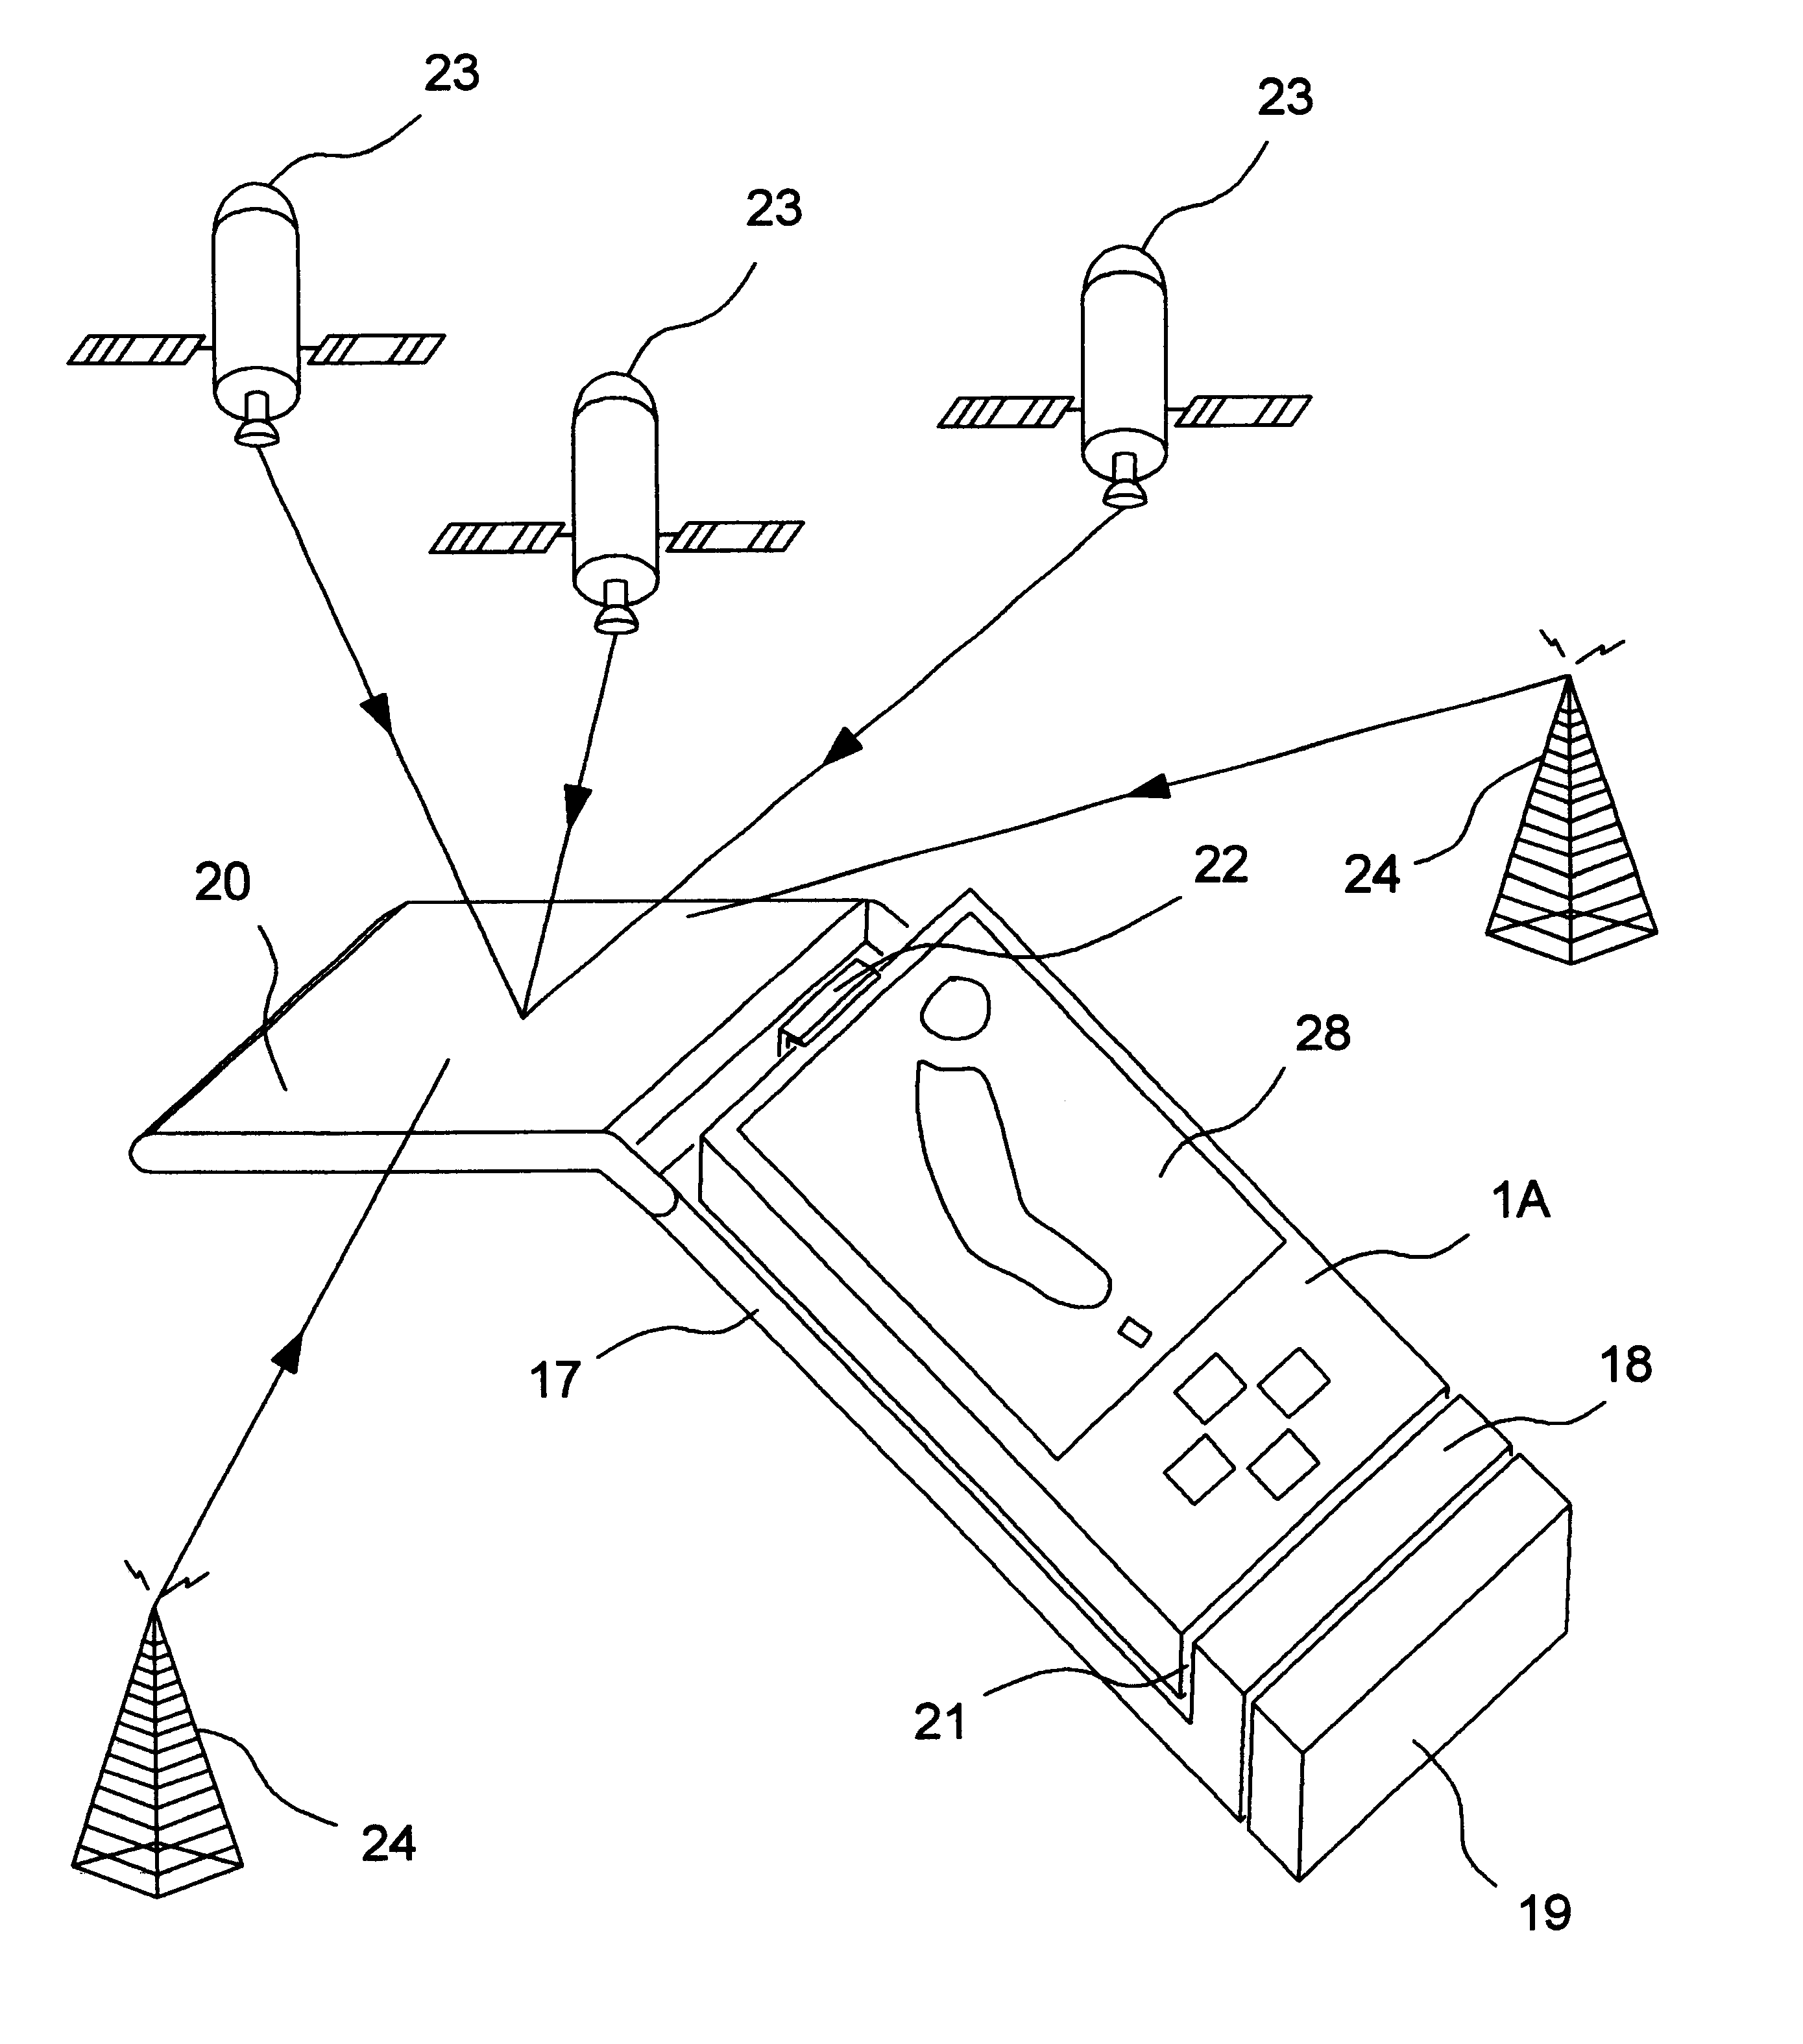 Patent Us 6456938 B1 Land Rover Owner O View Topic Carling Switch Wiring First Claim